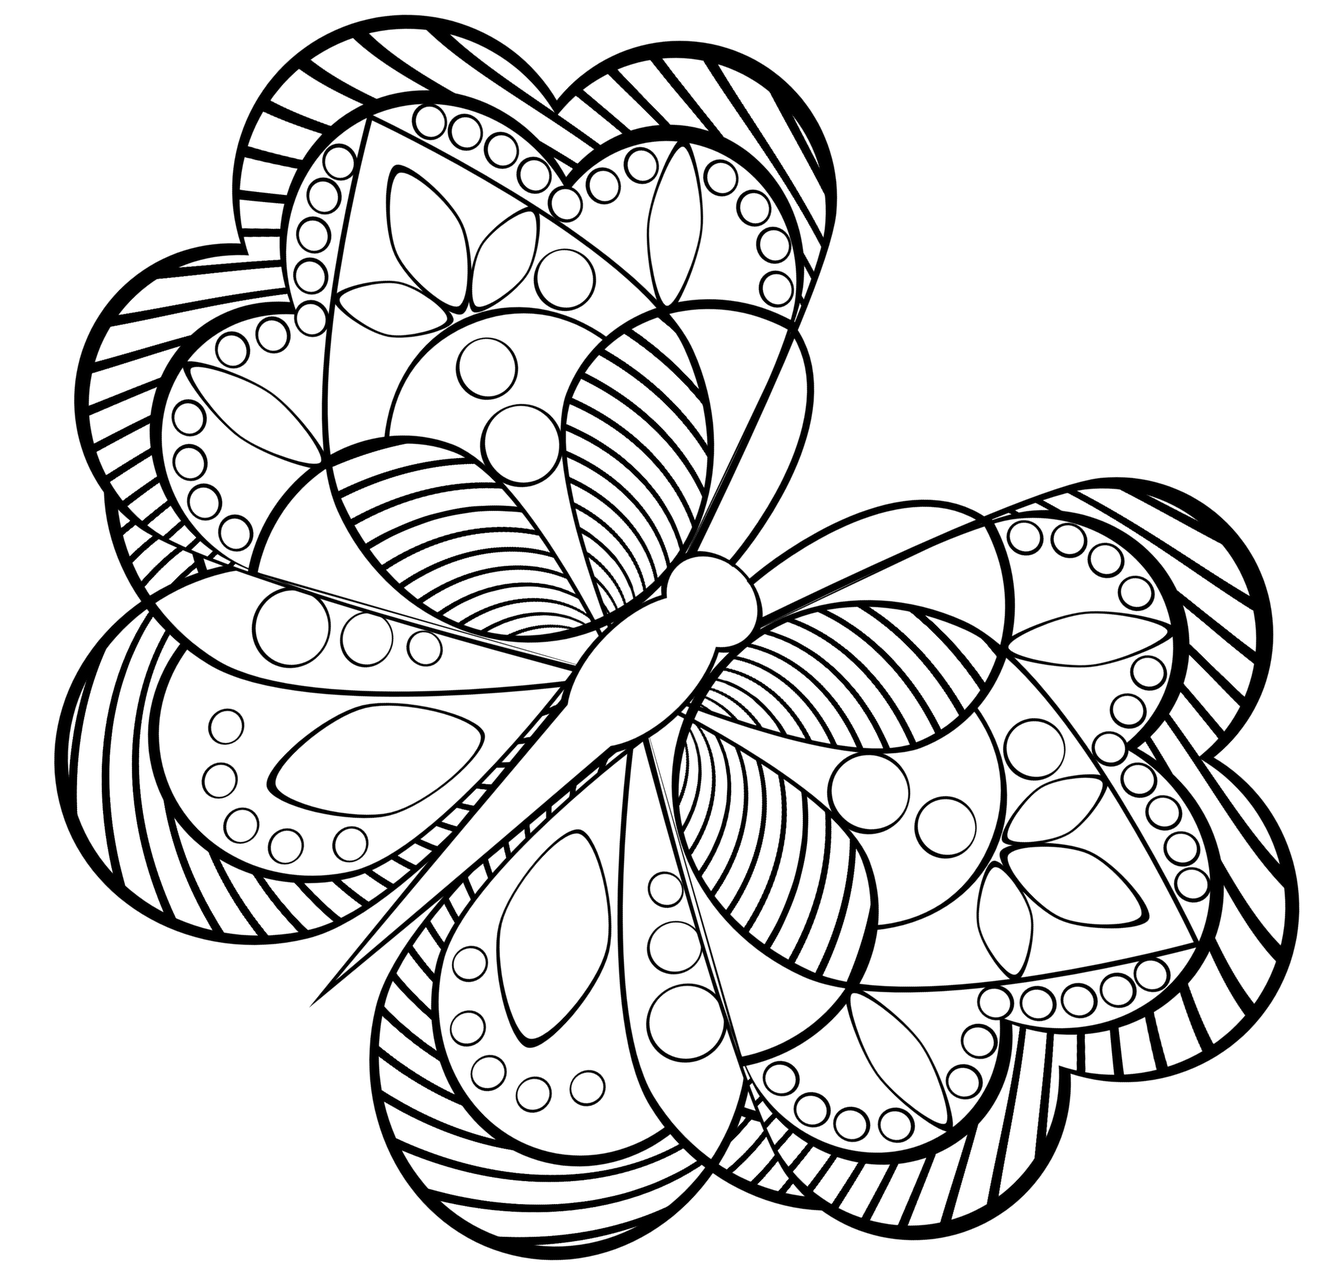 free teen coloring pages 10 free coloring pages for teens parents teen coloring free pages